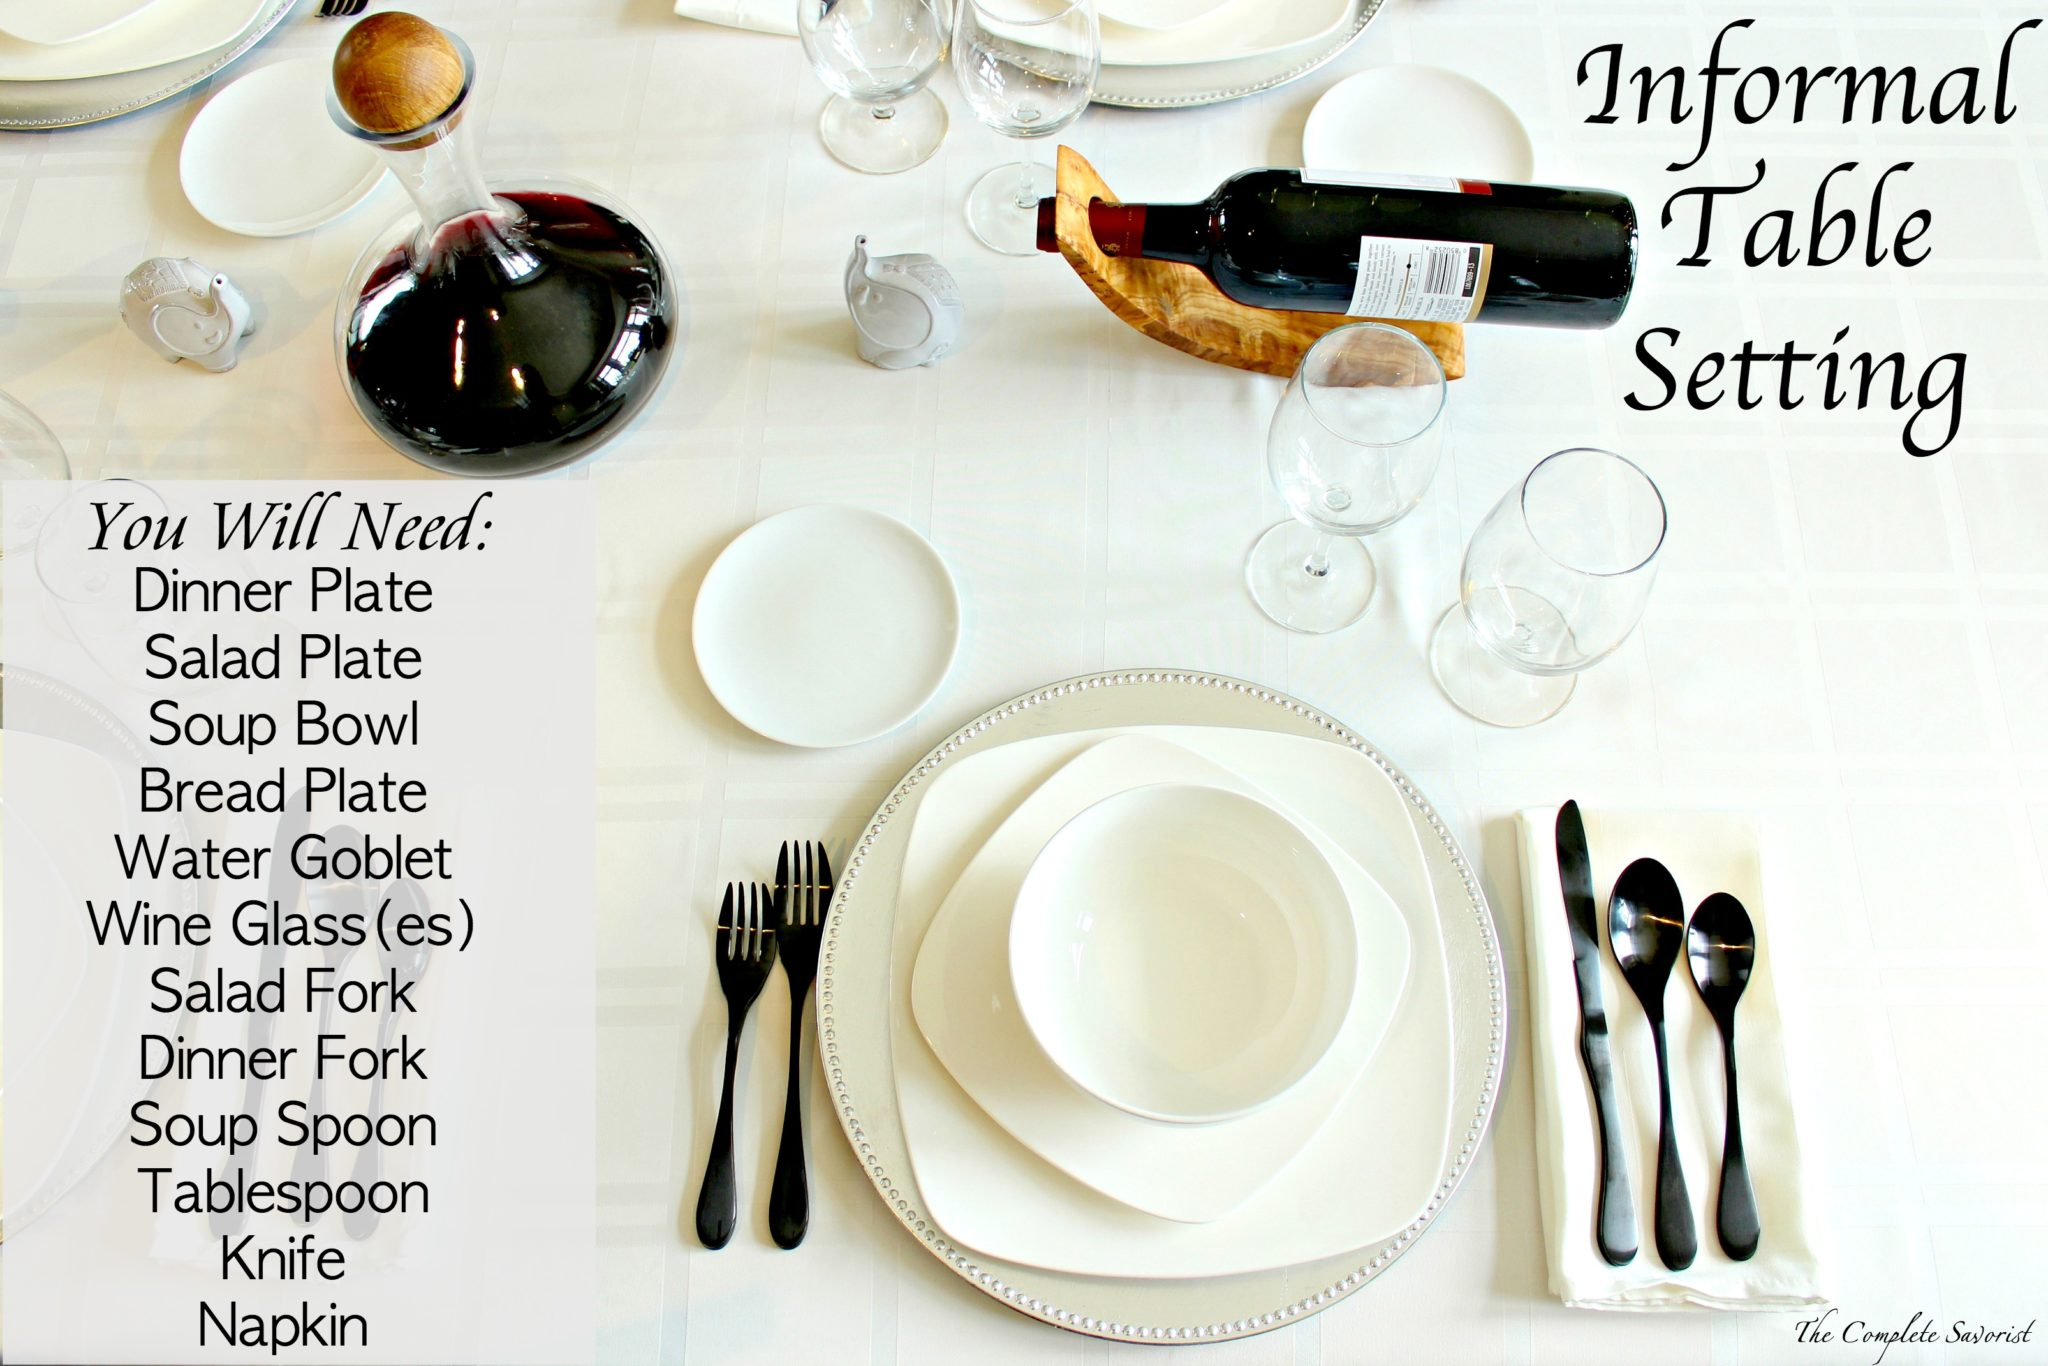 How to Set an Informal Table - The Complete Savorist